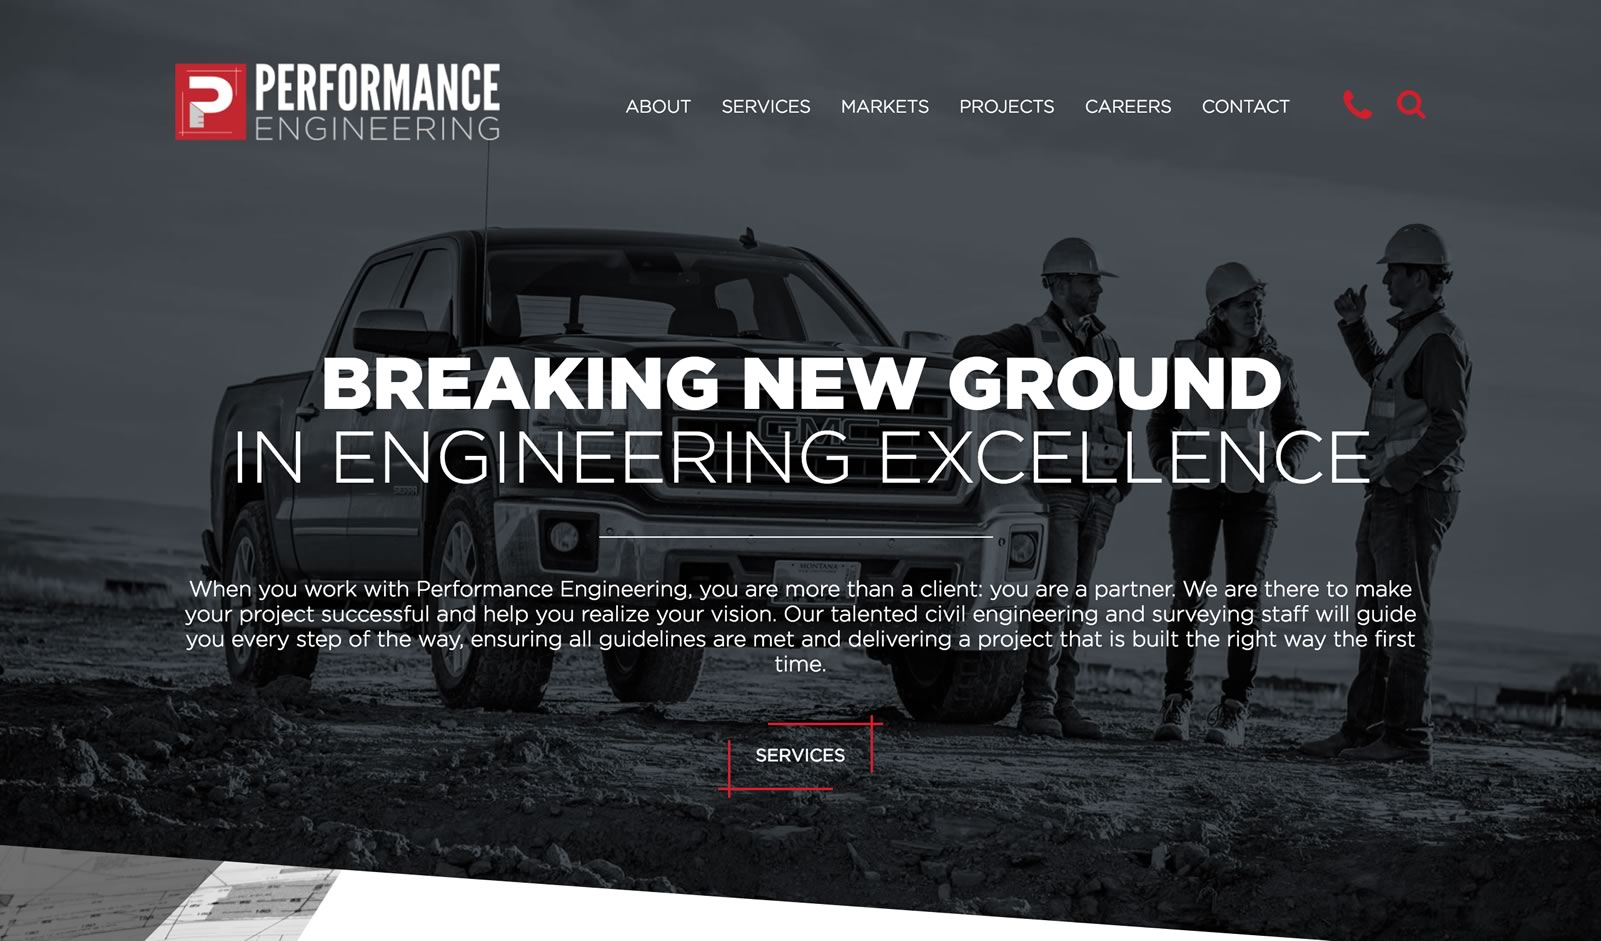 Web Design - Performance Engineering